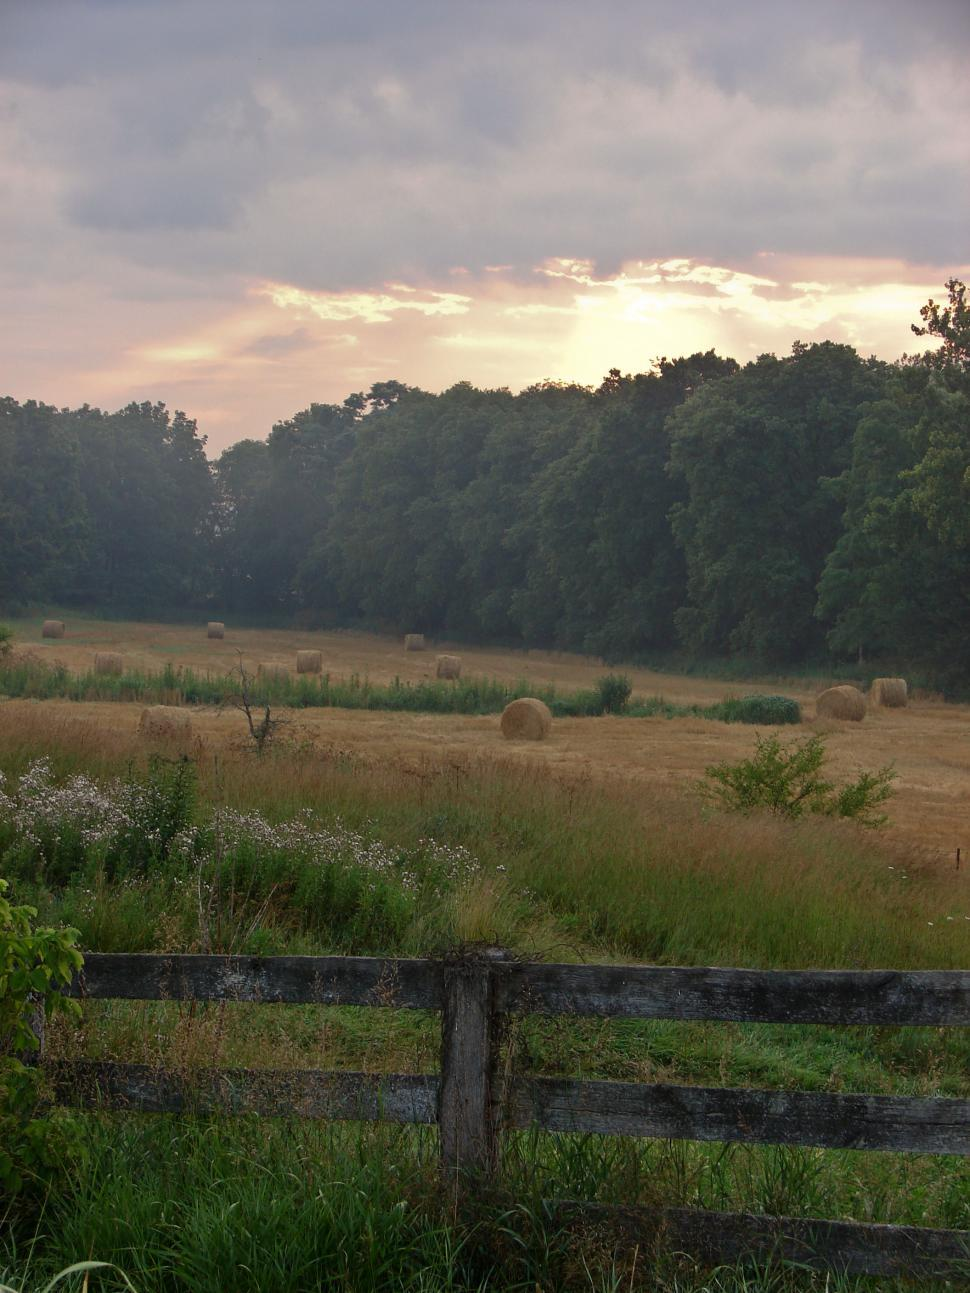 Download Free Stock HD Photo of Rural Summer MorningRural Summer Morning 2009 - YS, OH Online